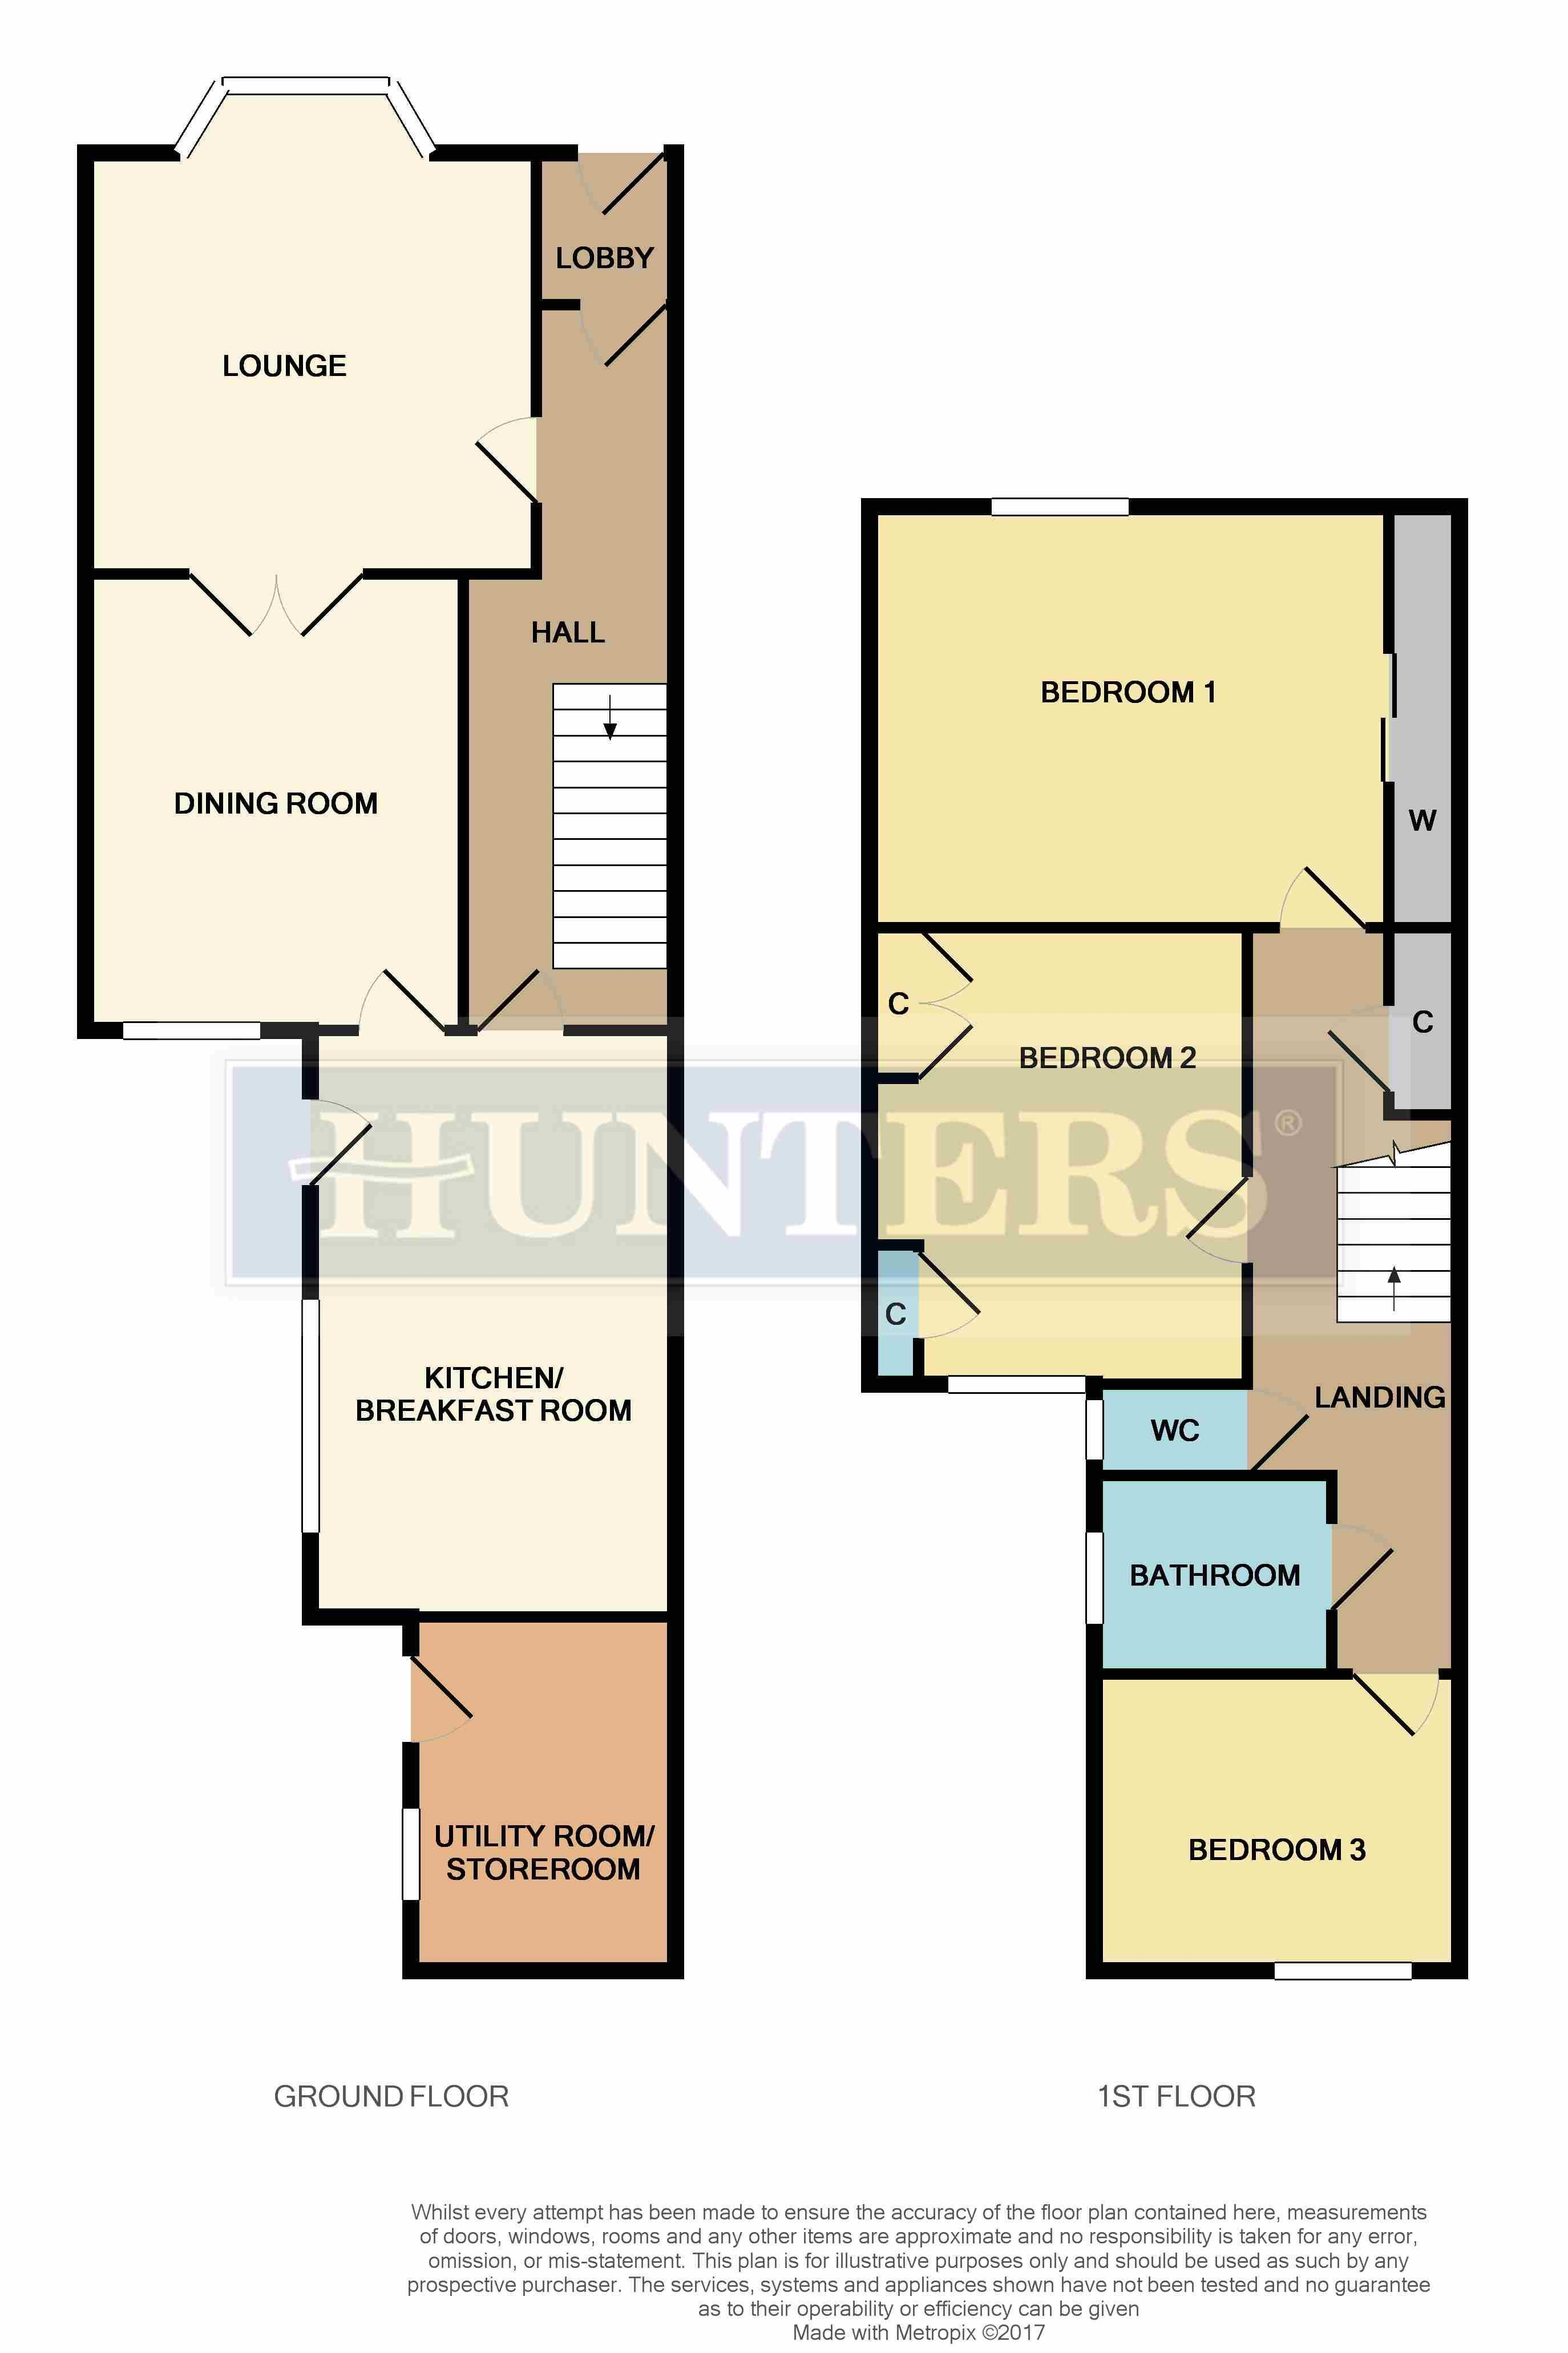 catholic singles in vails gate Official vails gate homes for rent  see floorplans, pictures, prices & info for available rental homes, condos, and townhomes in vails gate, ny.